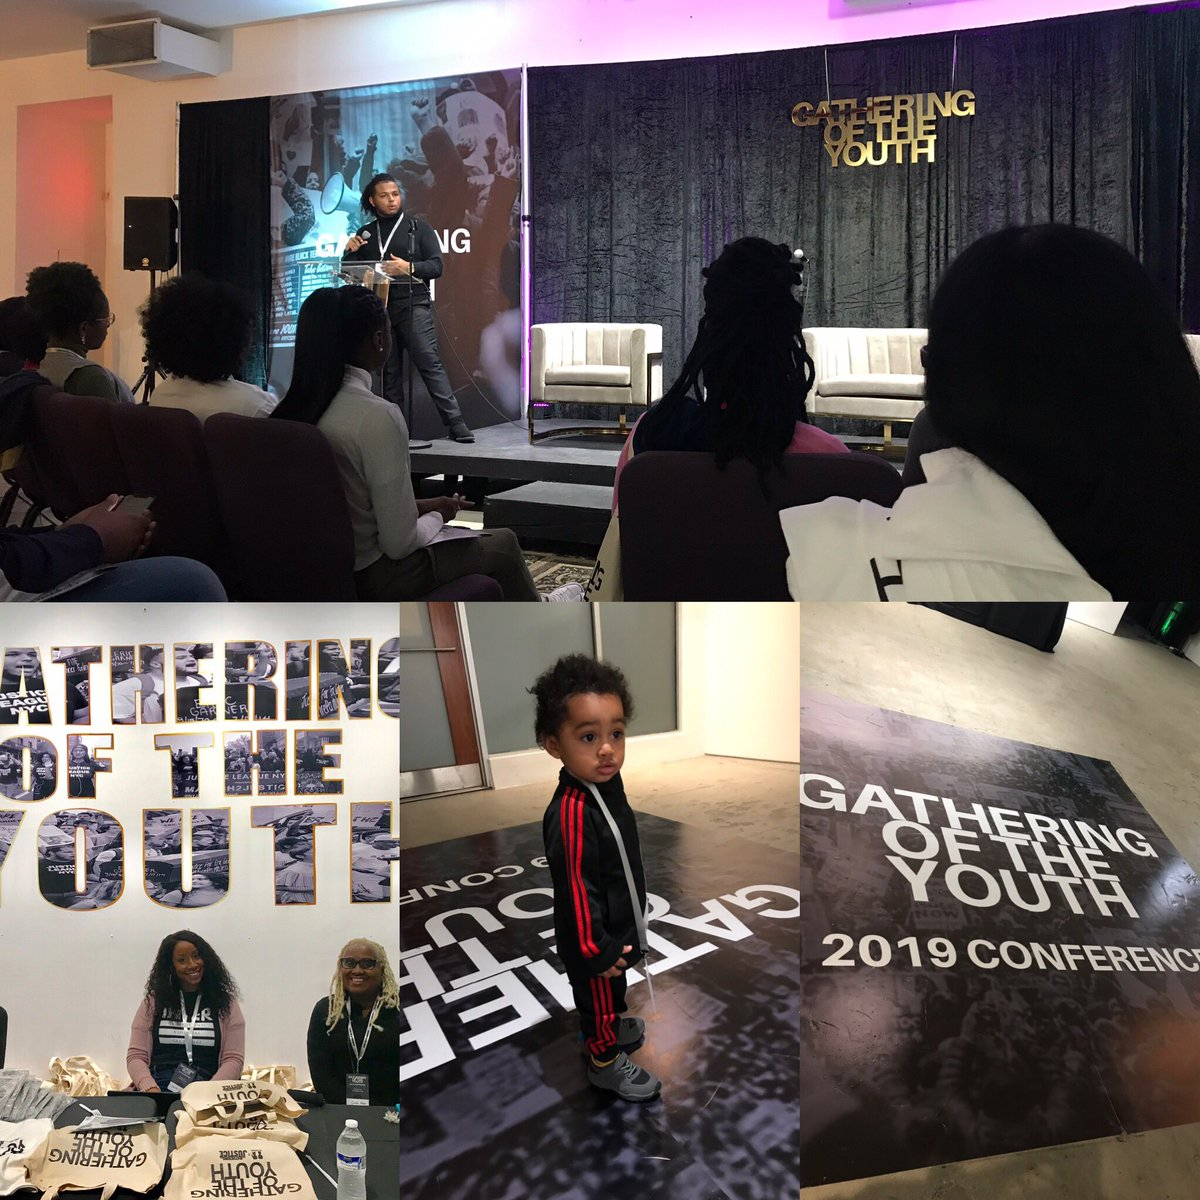 Justice League Nyc On Twitter The Gathering Of The Youth Kicks Off In Harlem A 3 Day Movement Building Youth Conference Focused On Dismantling The School To Prison Pipeline Through Juvenile Justice Reform Gun Violence Prevention